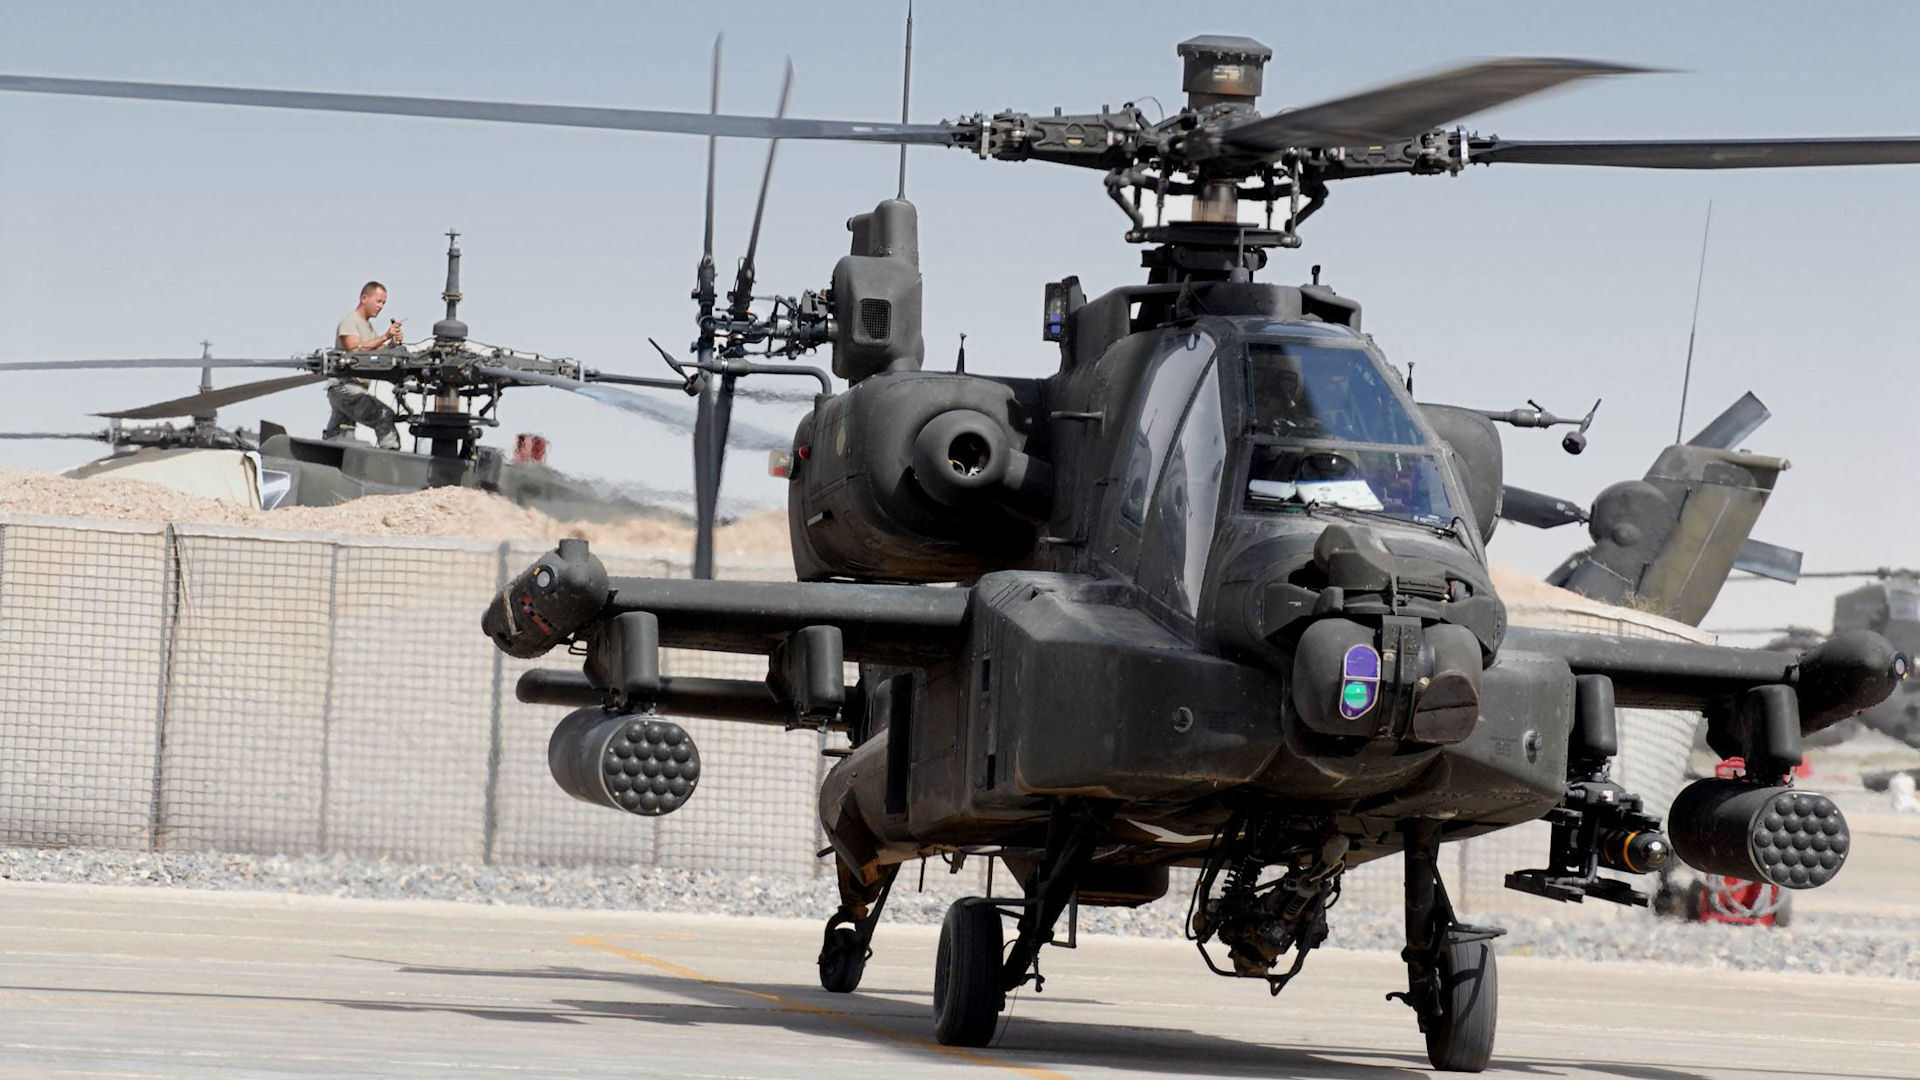 Apache-Helicopter-Mobile-HD-1920%C3%971080-wallpaper-wpc5802197